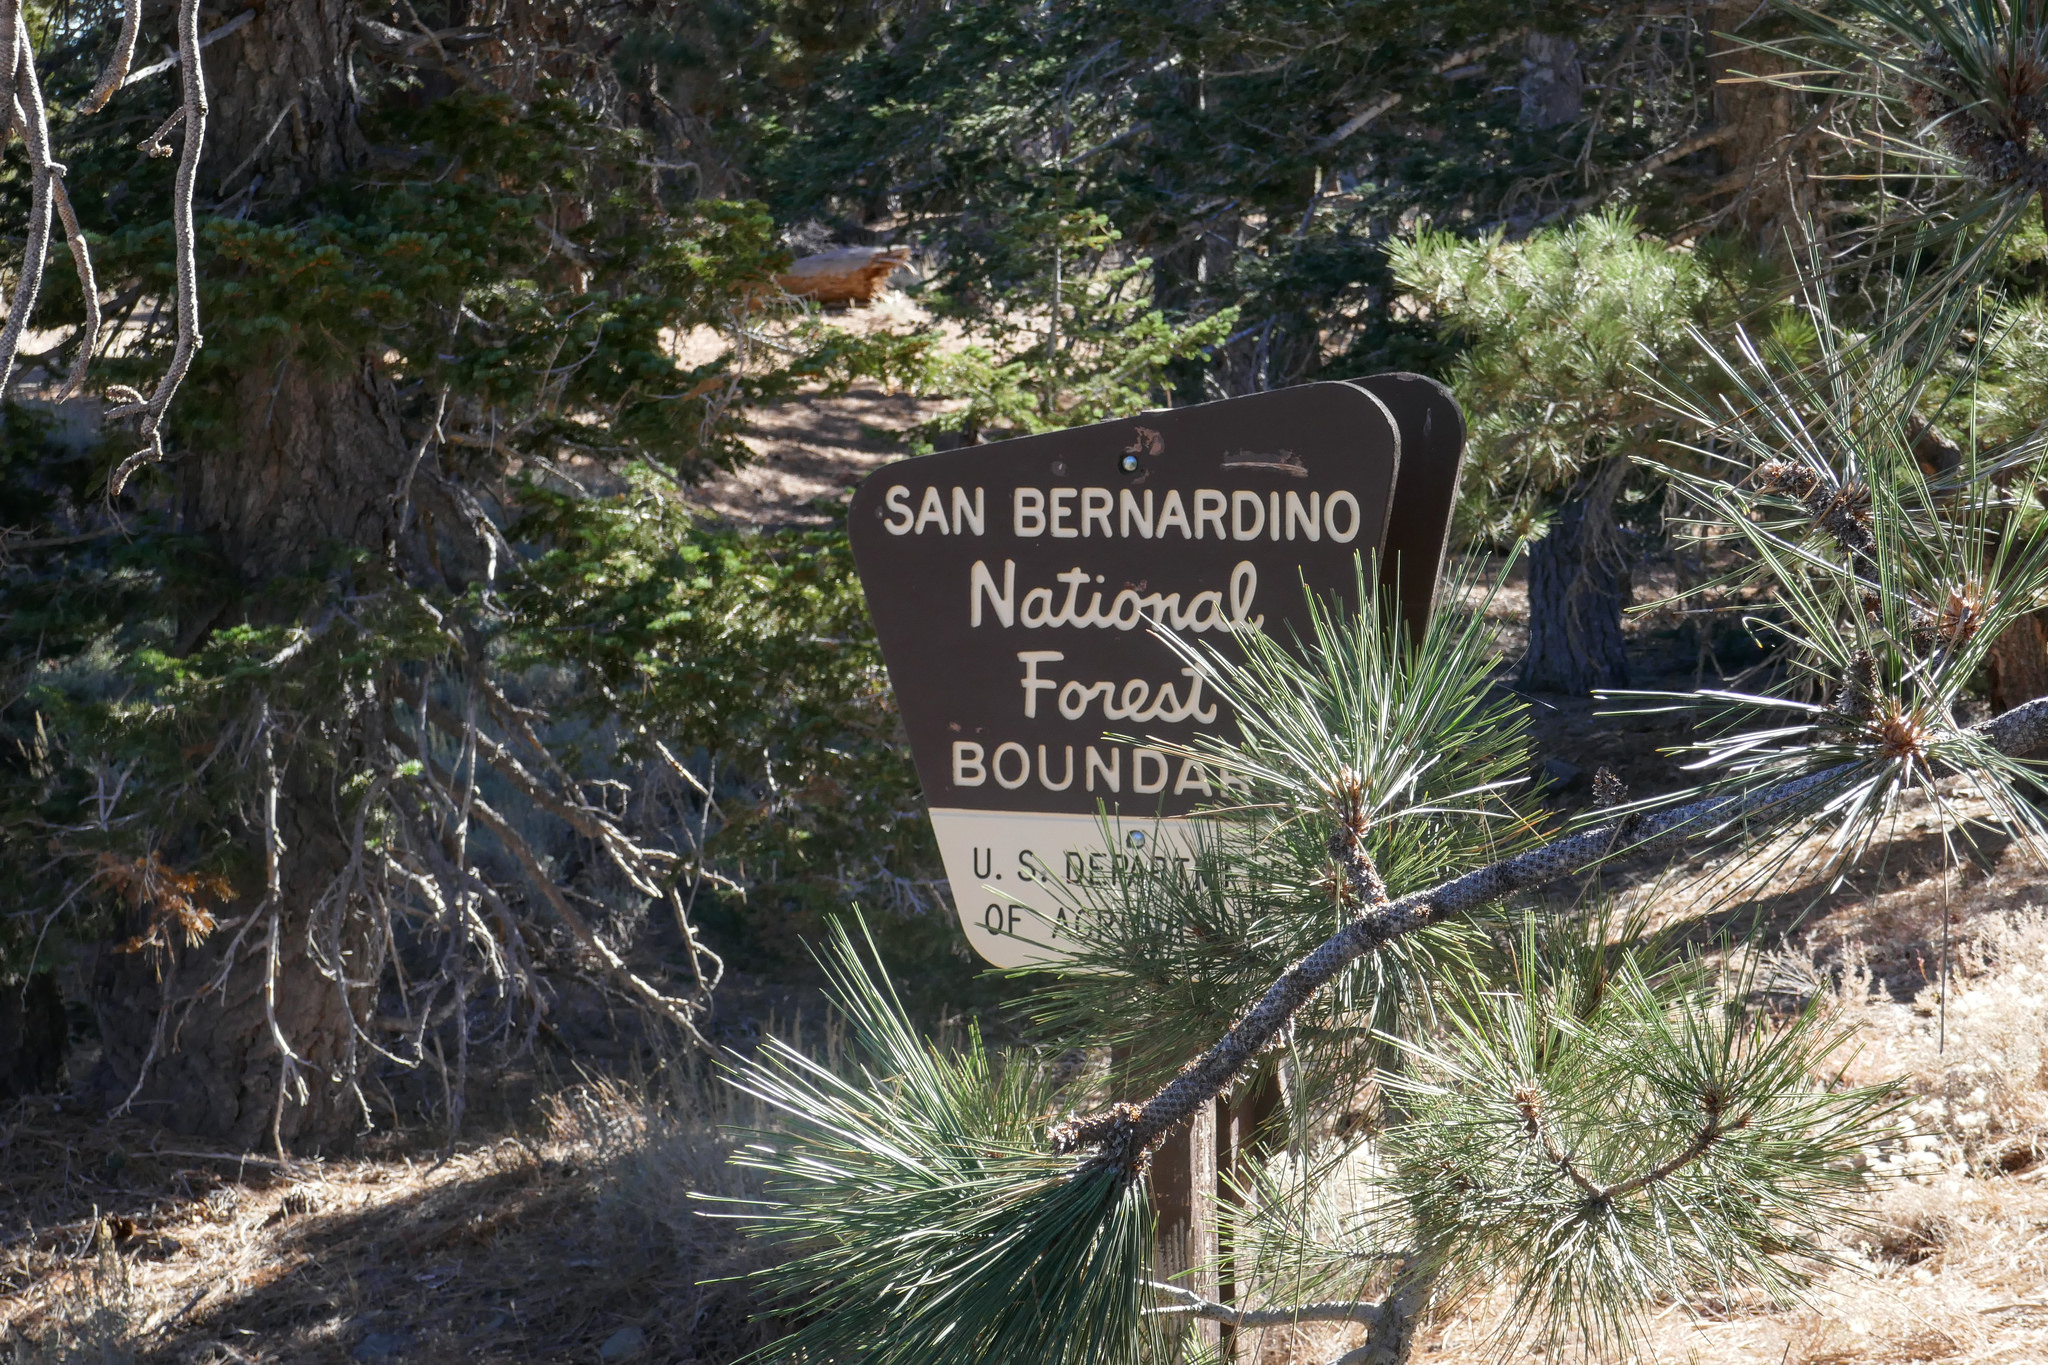 We crossed over into the San Bernardino National Forest.